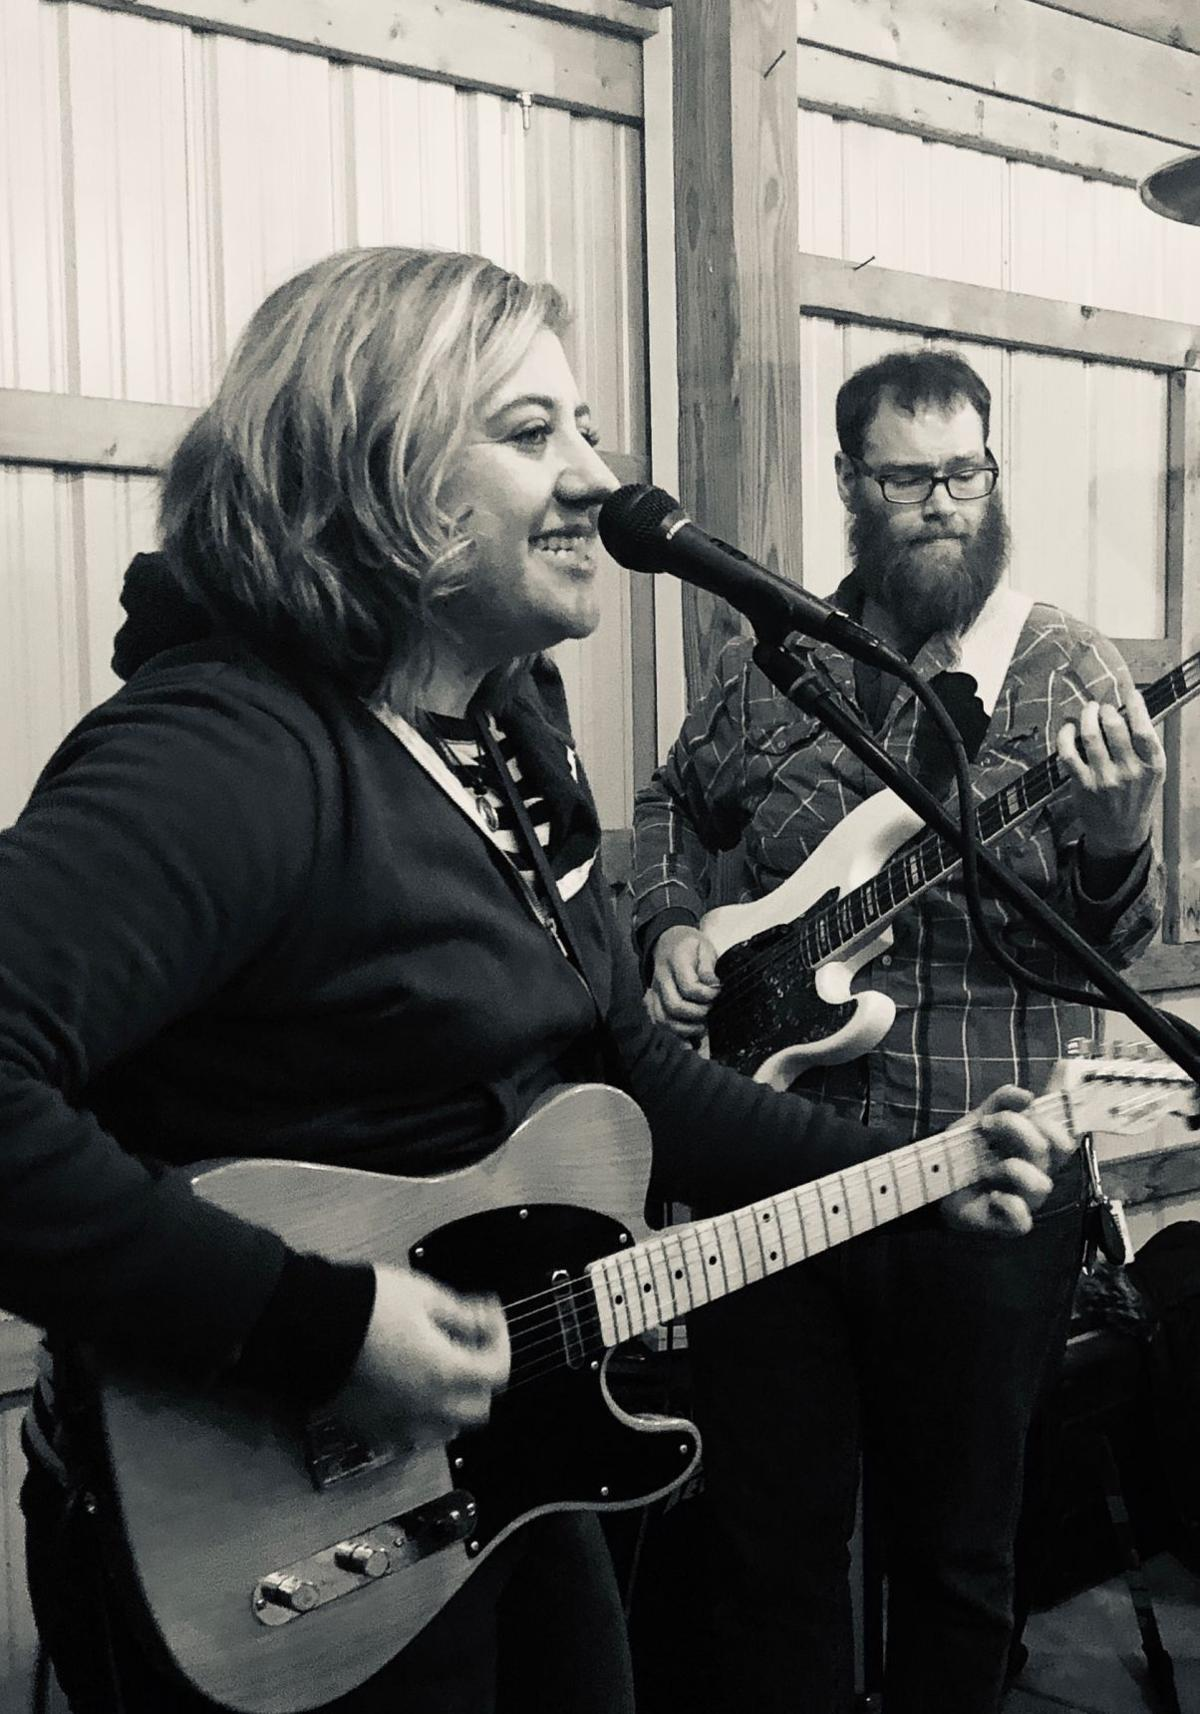 Adrienne Smith at Tenth Ward February 14, 2020